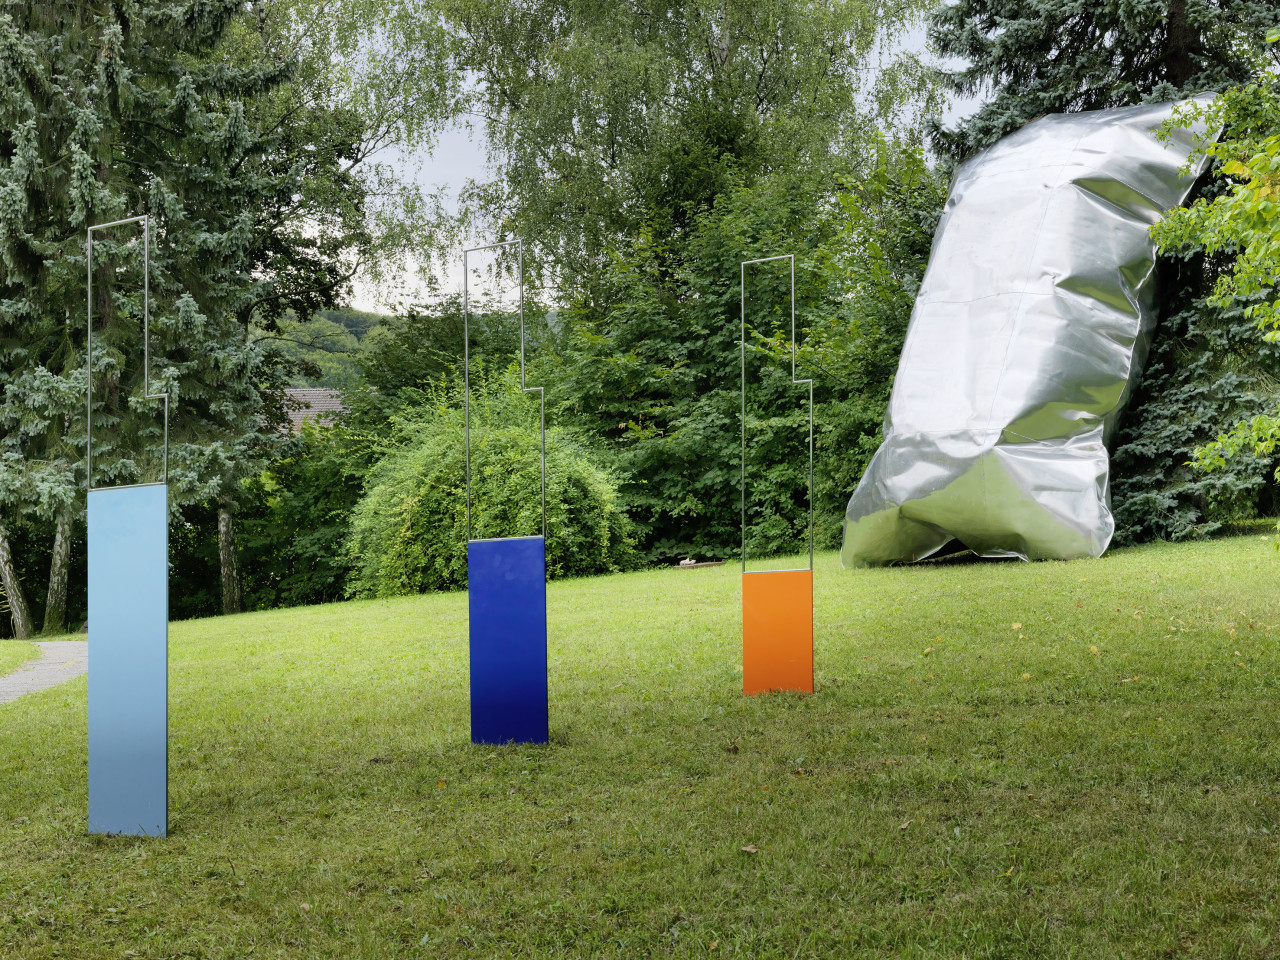 Sculpture Garden, Installation view: Amy Stephens & Hans Kupelwieser, 2019 Photo: © FARBPRAXIS